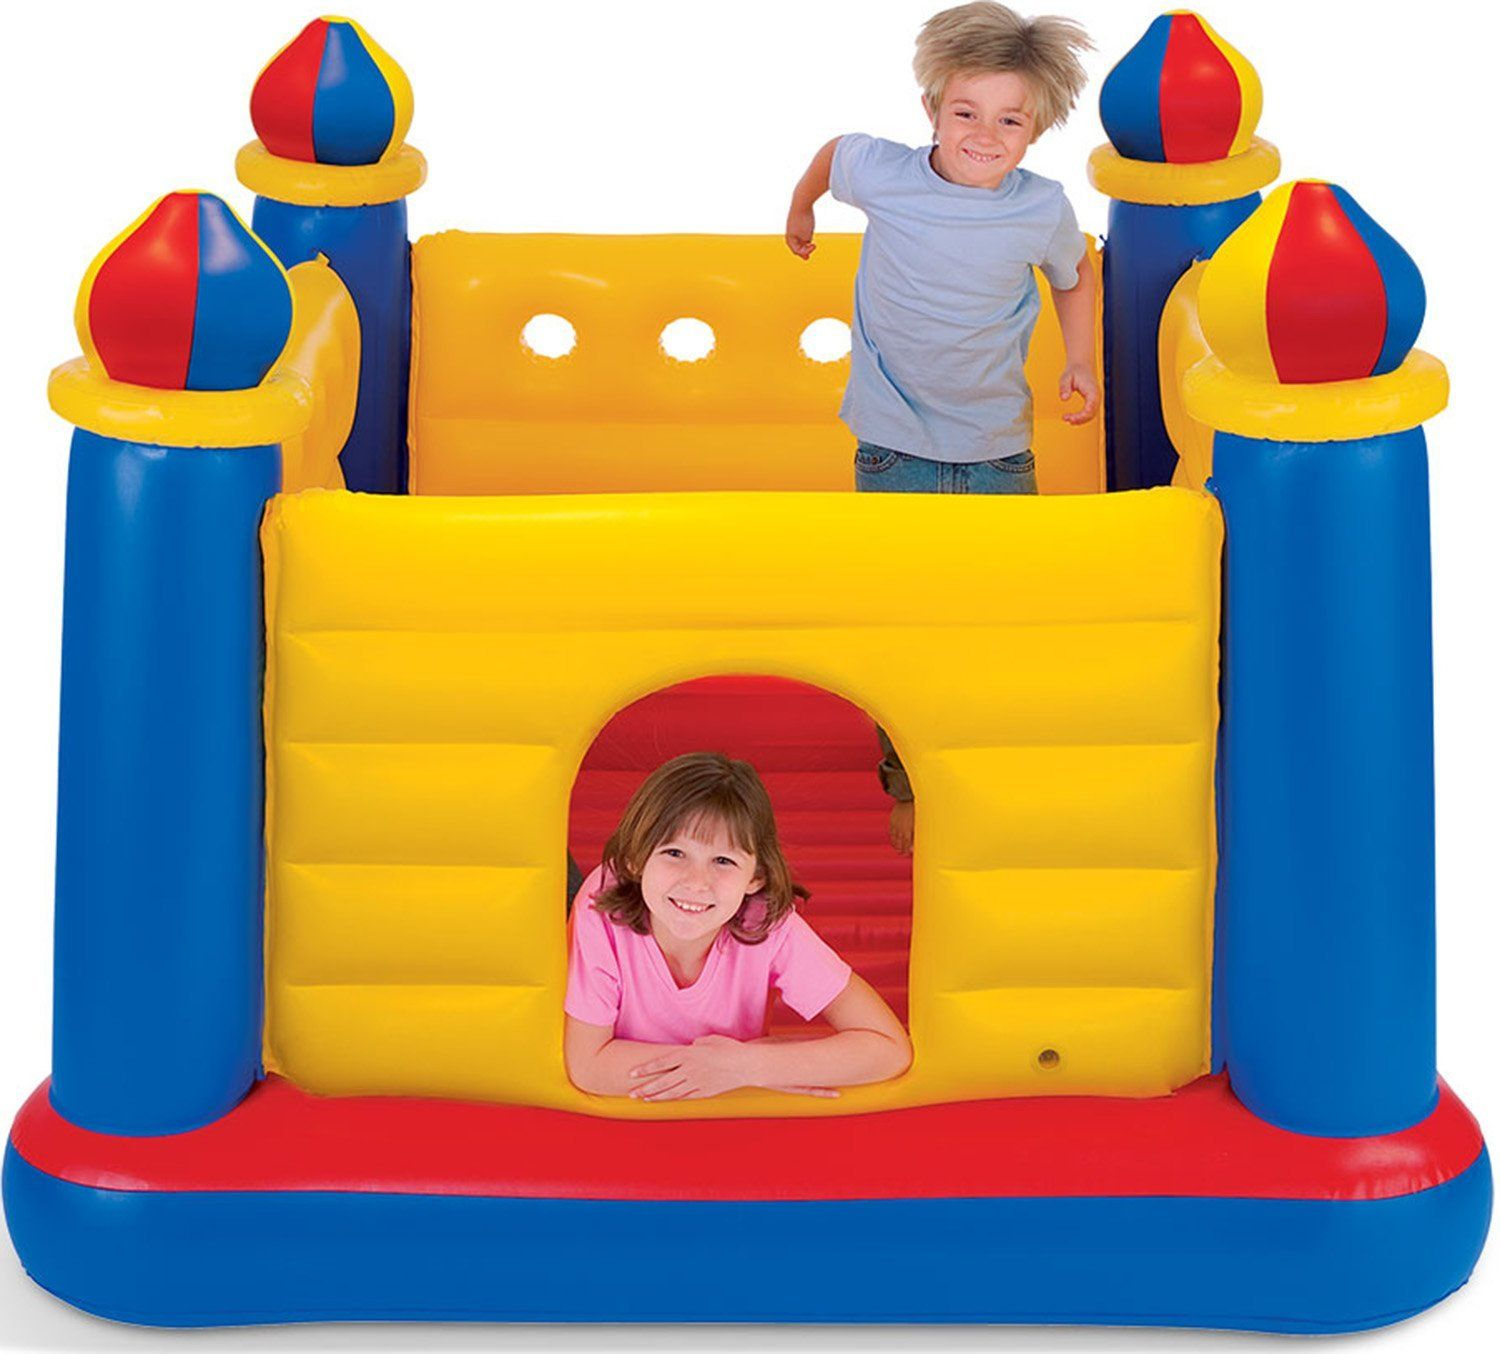 a small size inflatable bounce house perfect for toddlers